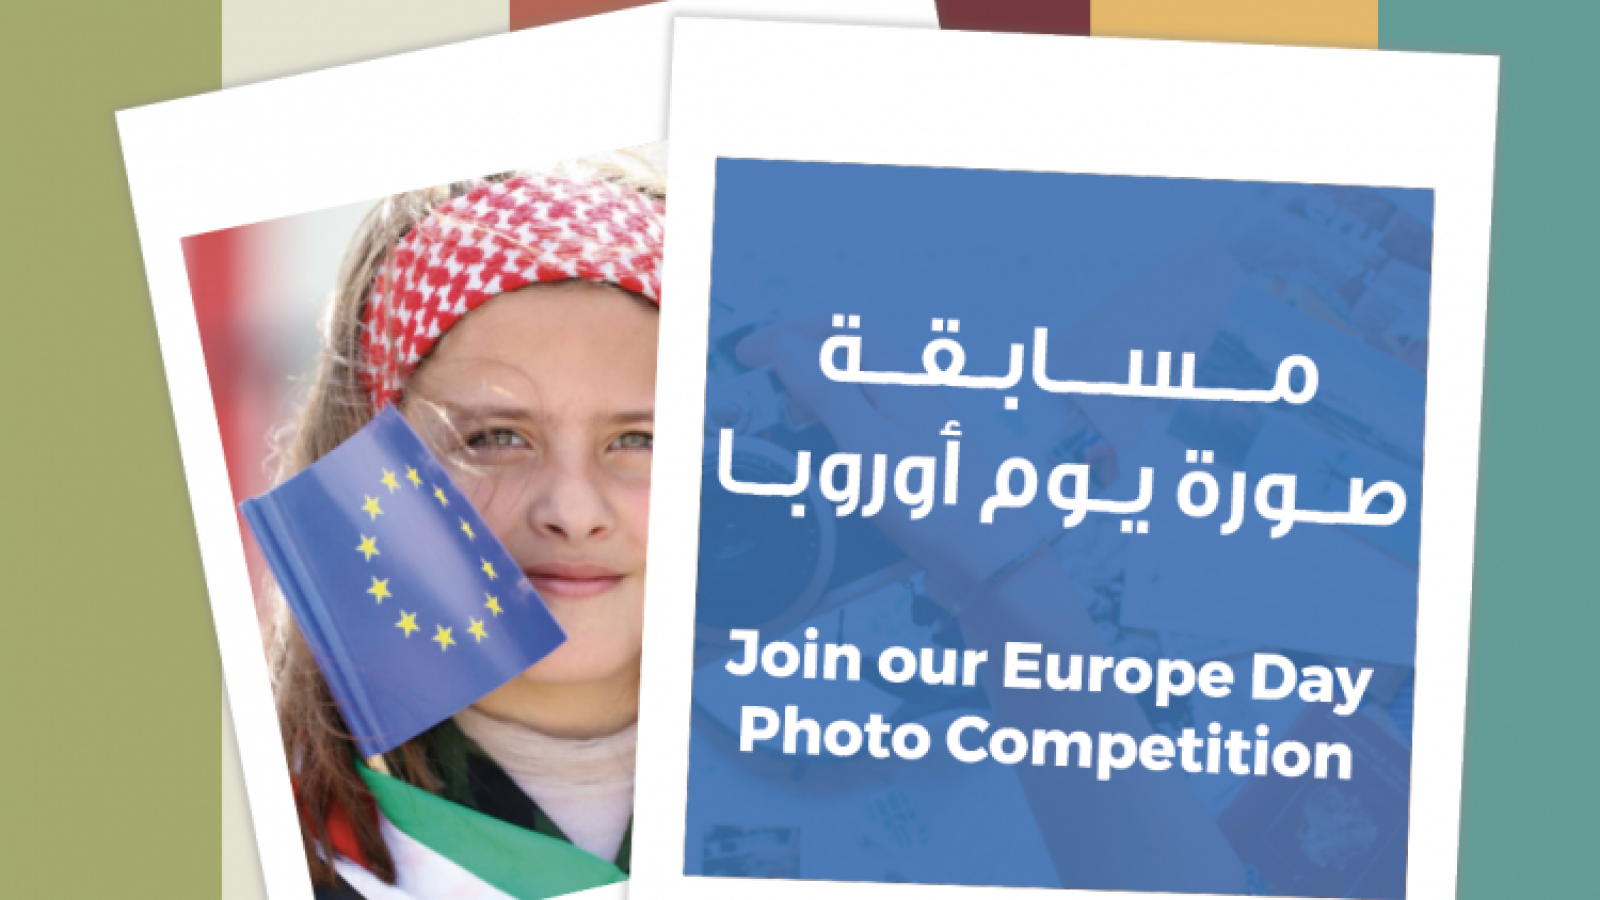 EU in Jordan launches Europe Day photo competition